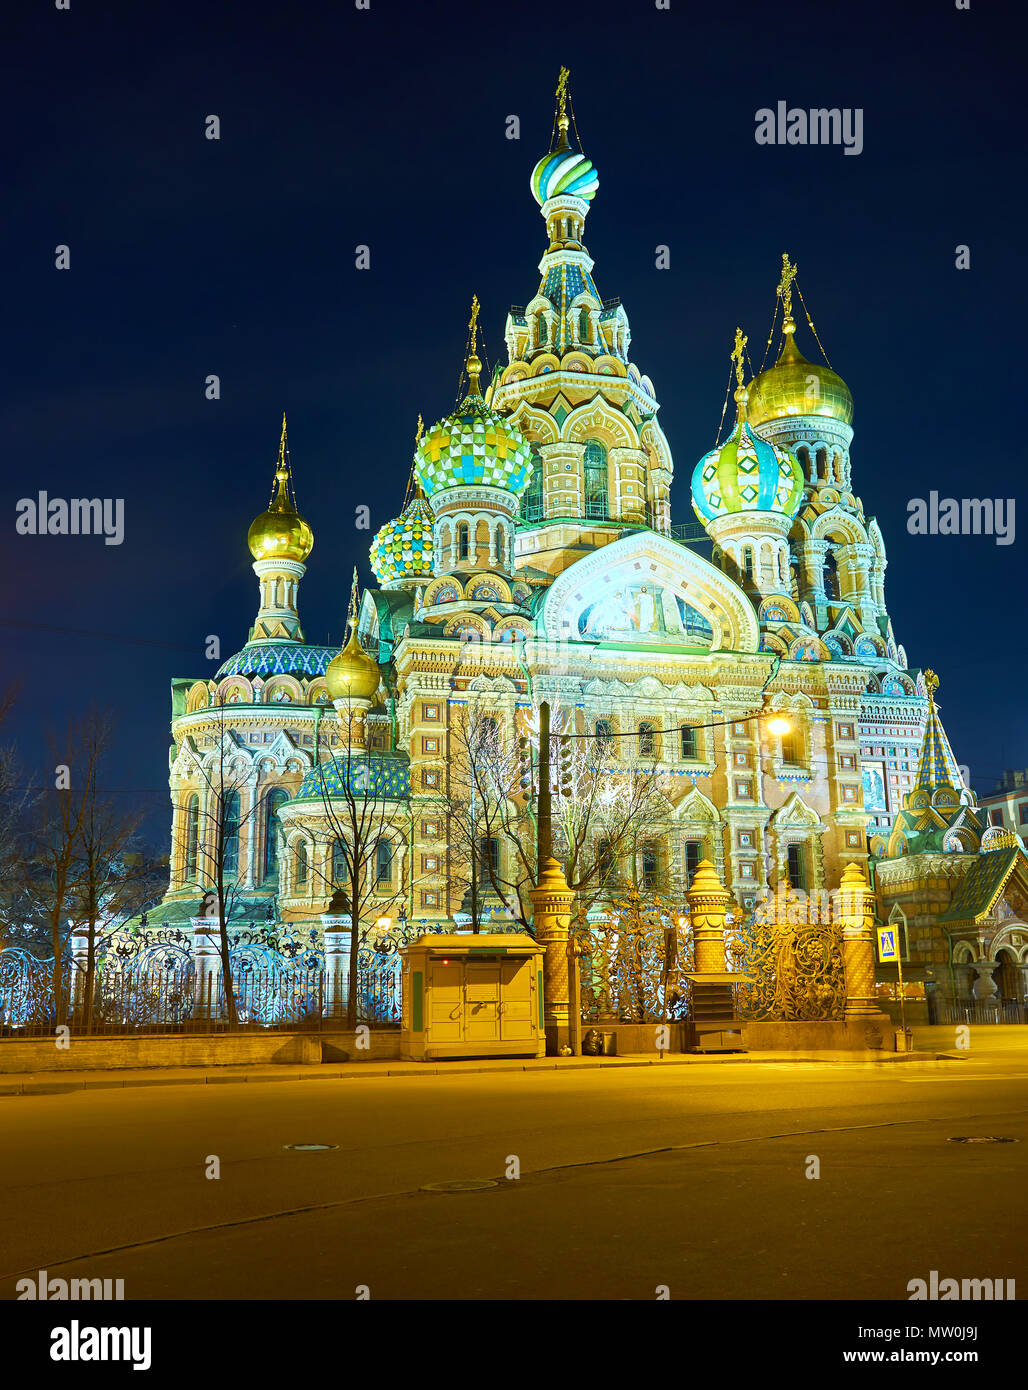 Church of the Savior on Spilled Blood is the symbol of Russian architectural style and the most remarkable landmark of Saint Petersburg, Russia - Stock Image